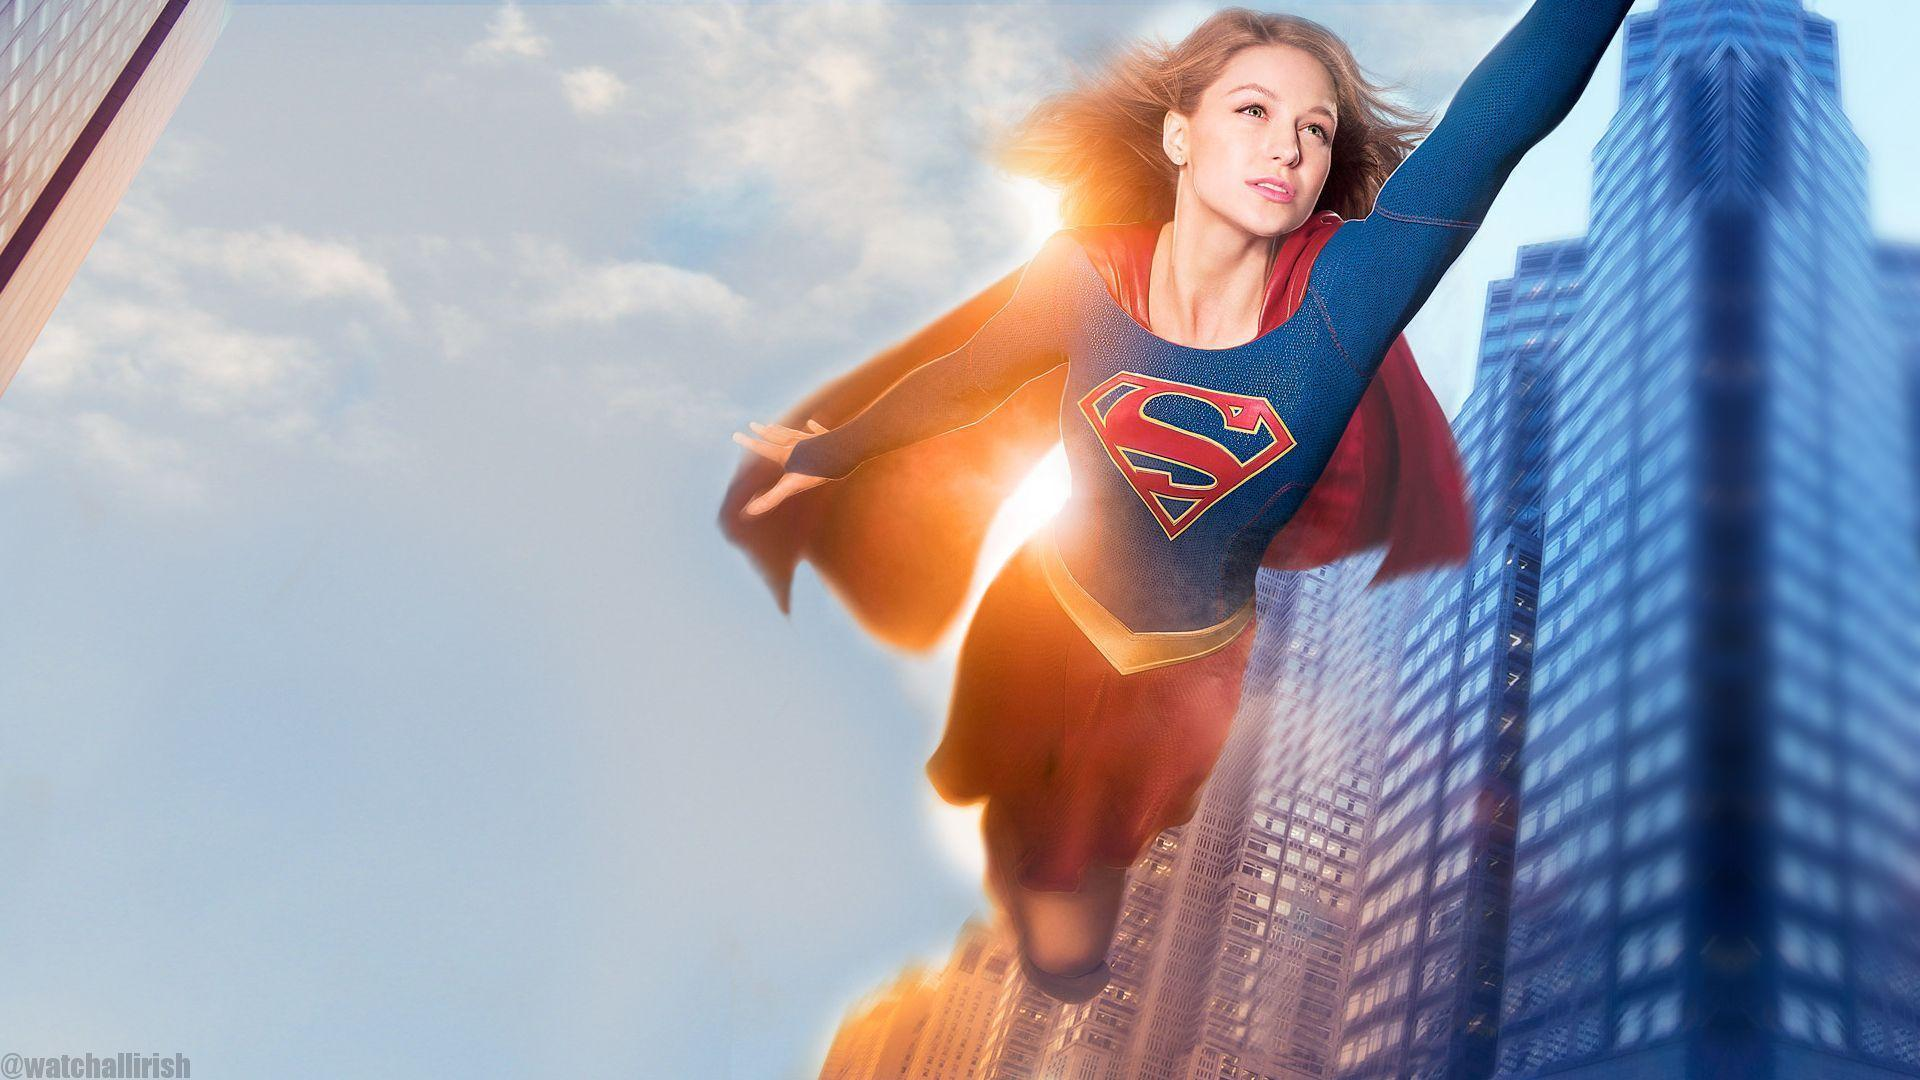 Supergirl TV Wallpapers High Resolution and Quality Download